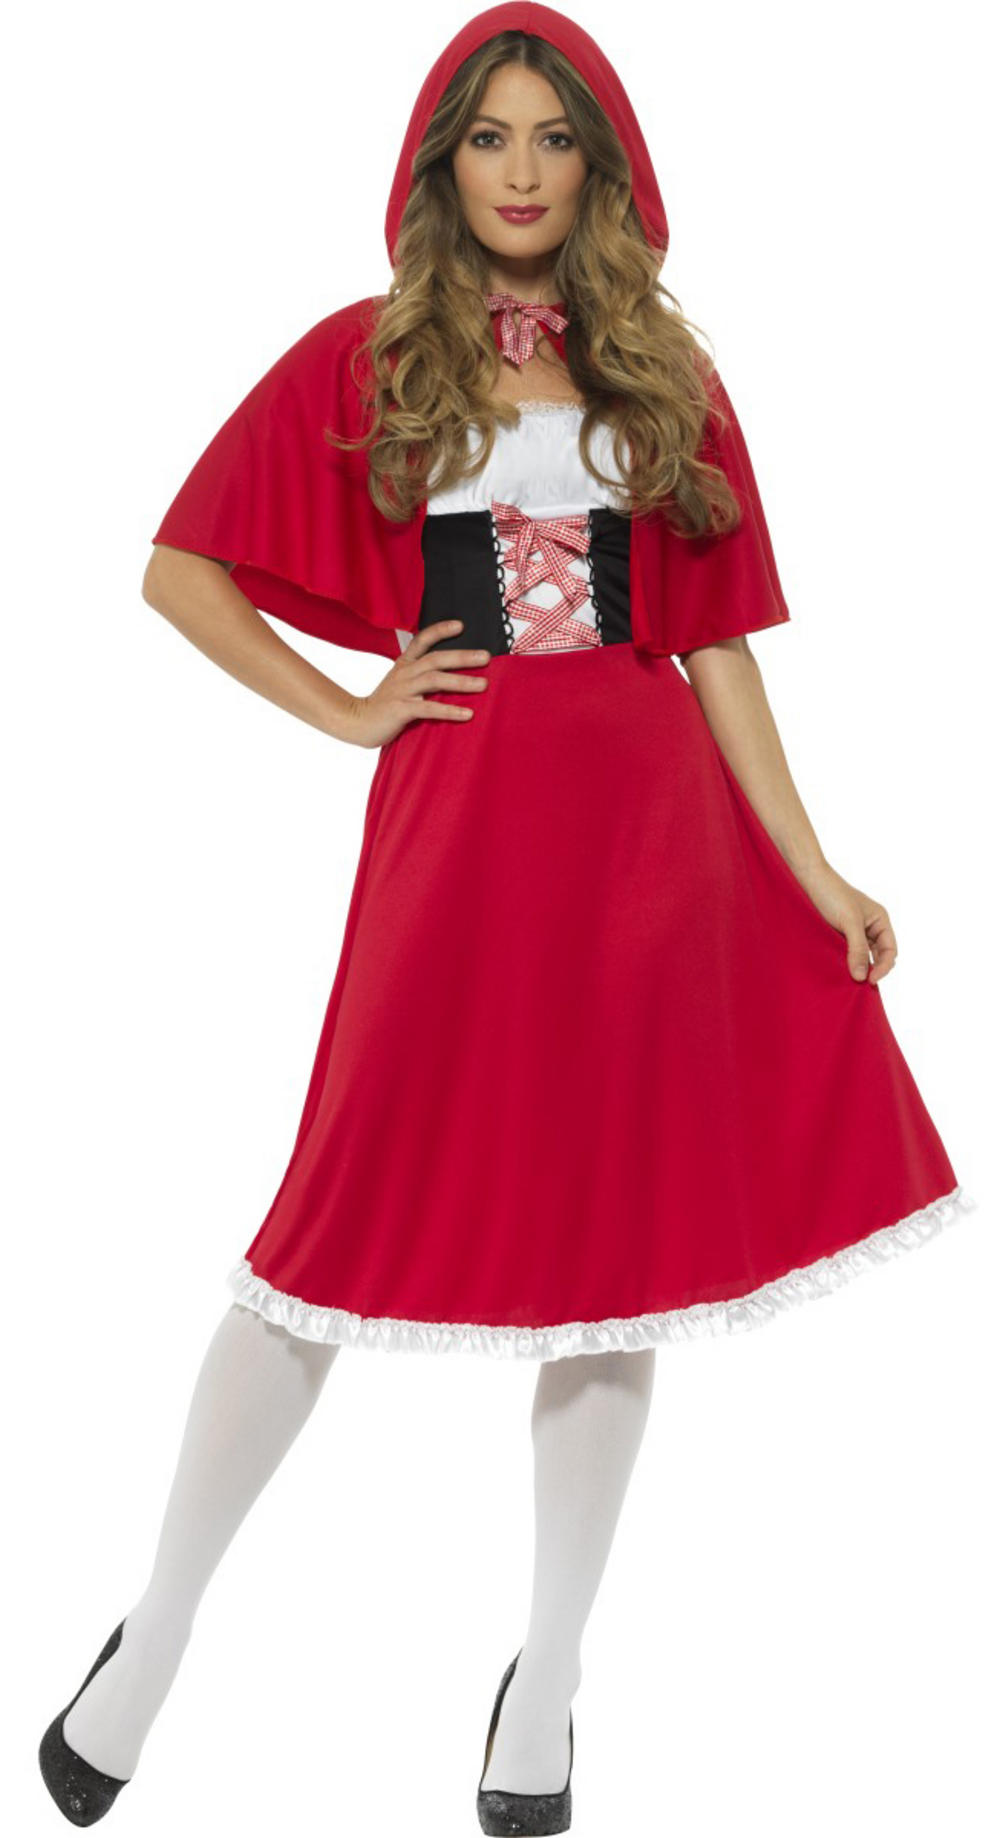 Red Riding Hood Ladies Costume